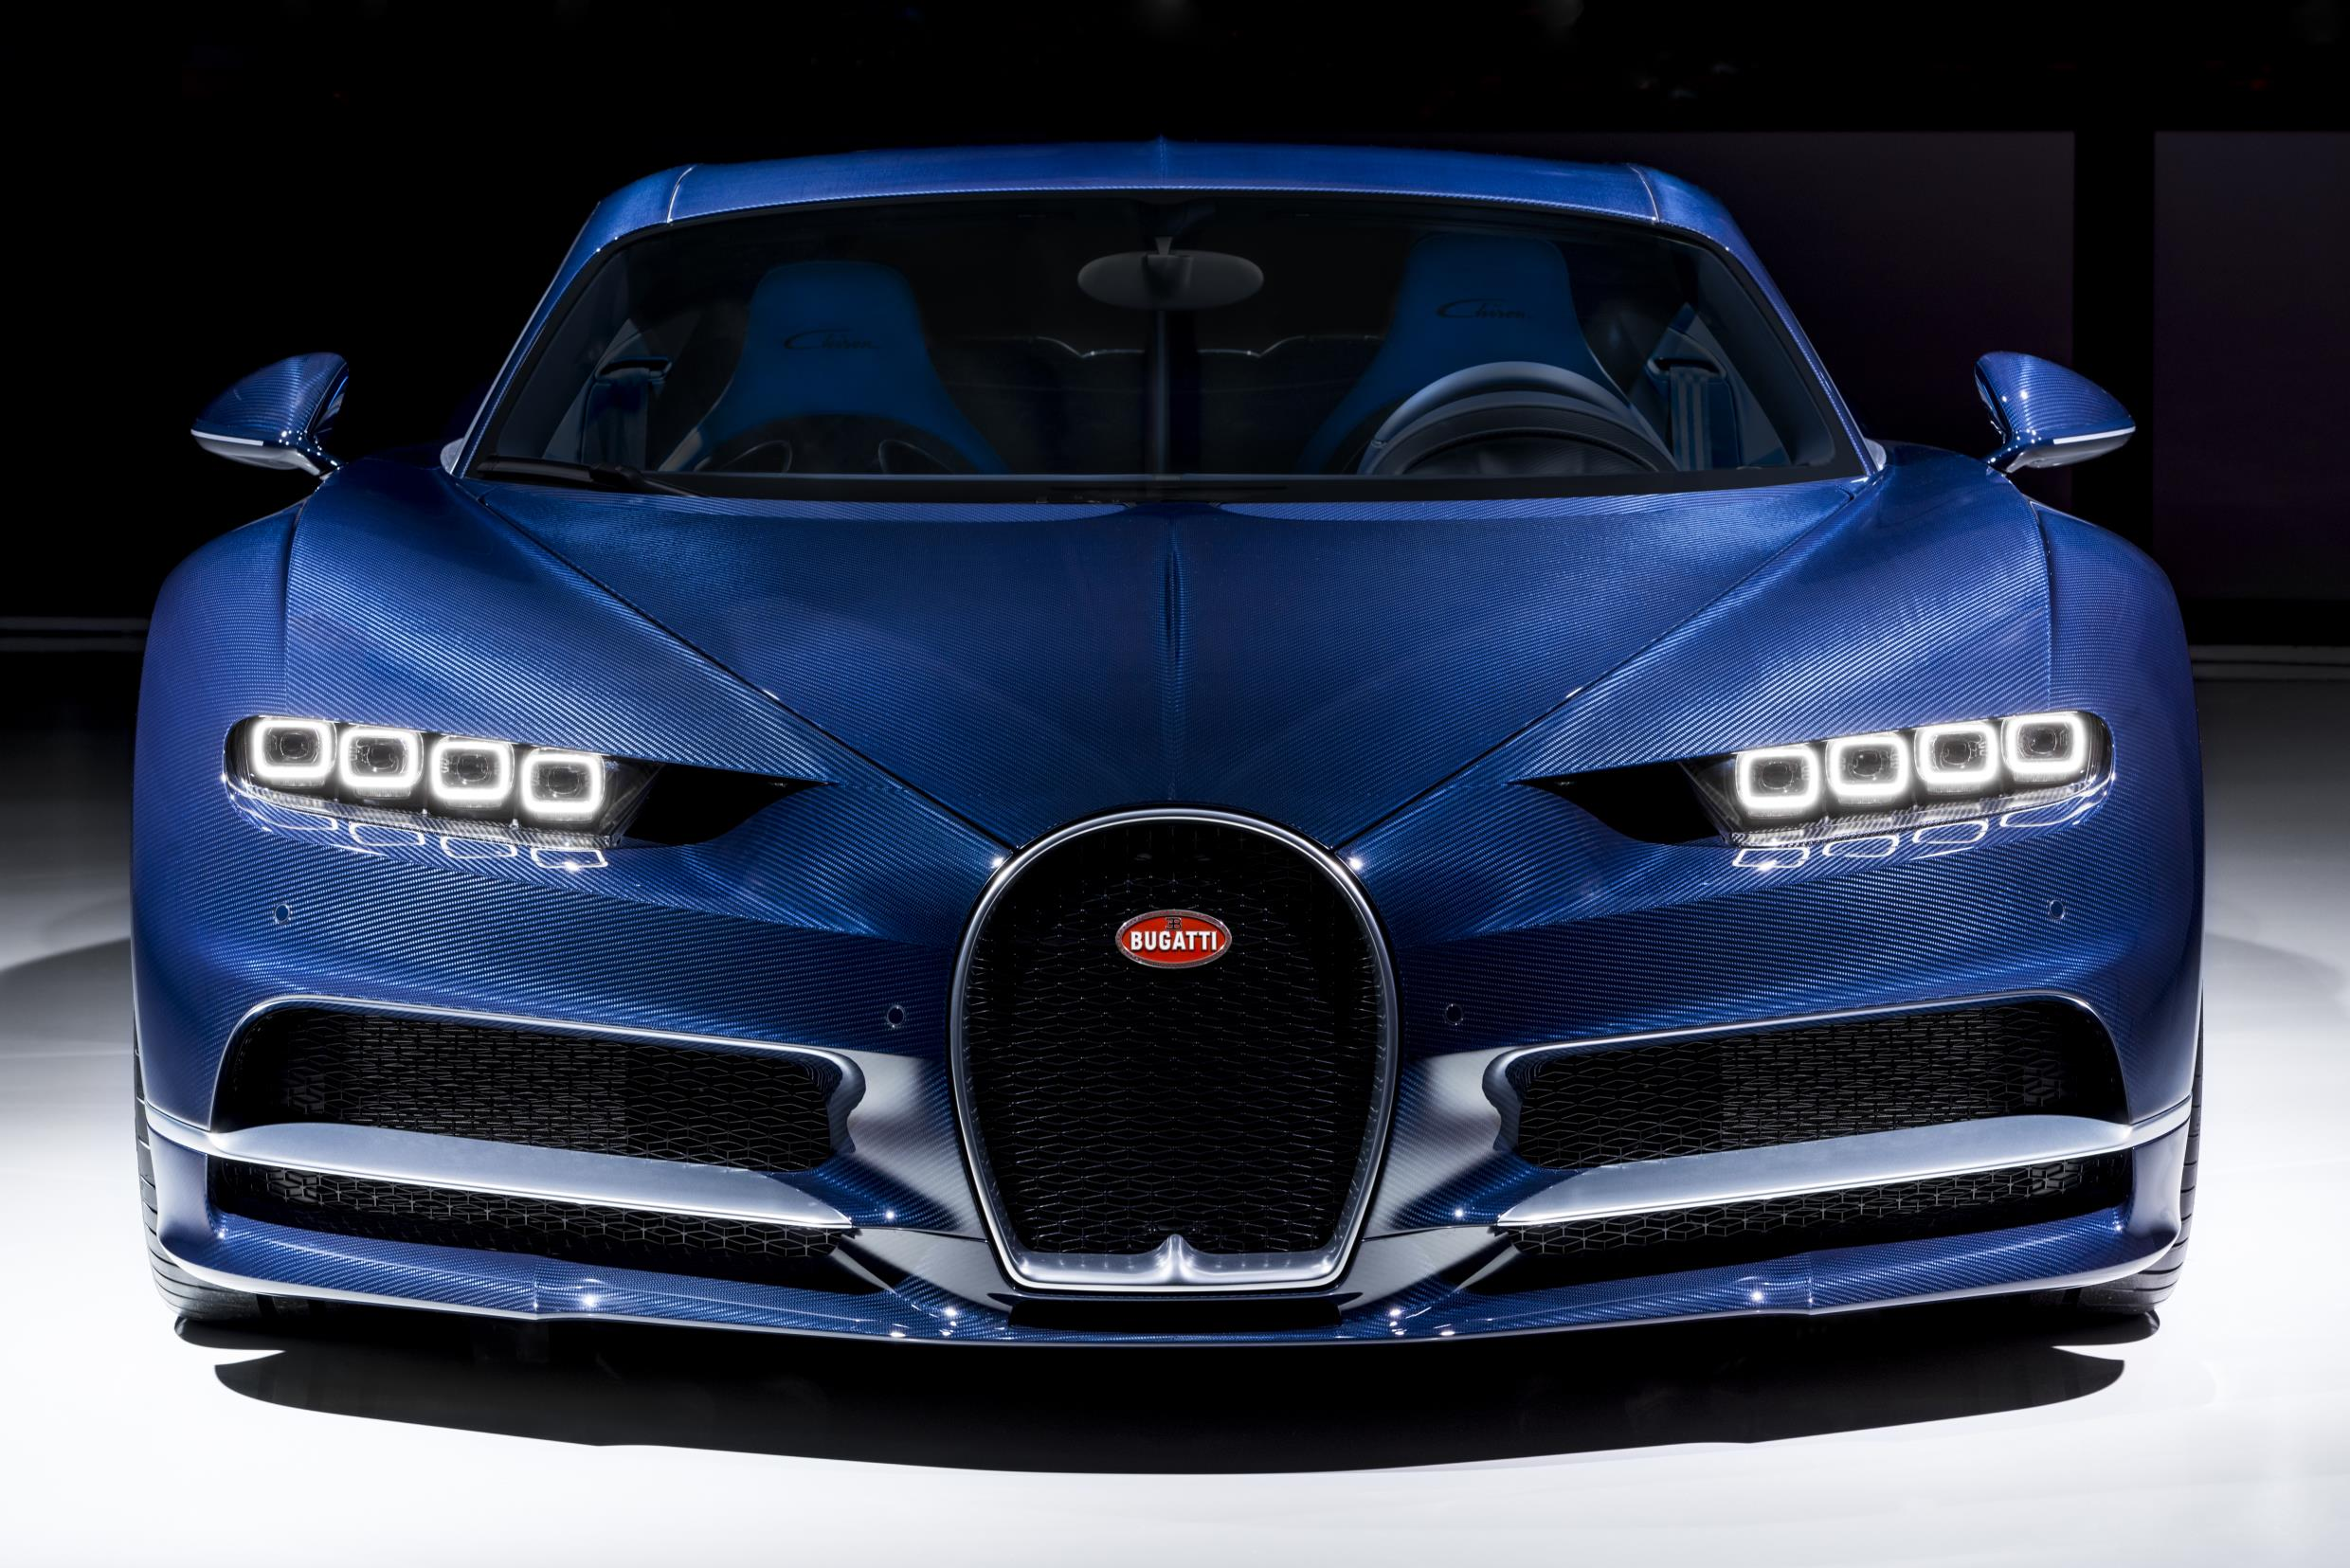 Bugatti Chiron Grand Sport Roadster Rendering Looks Cool 105259 on audi a4 2019